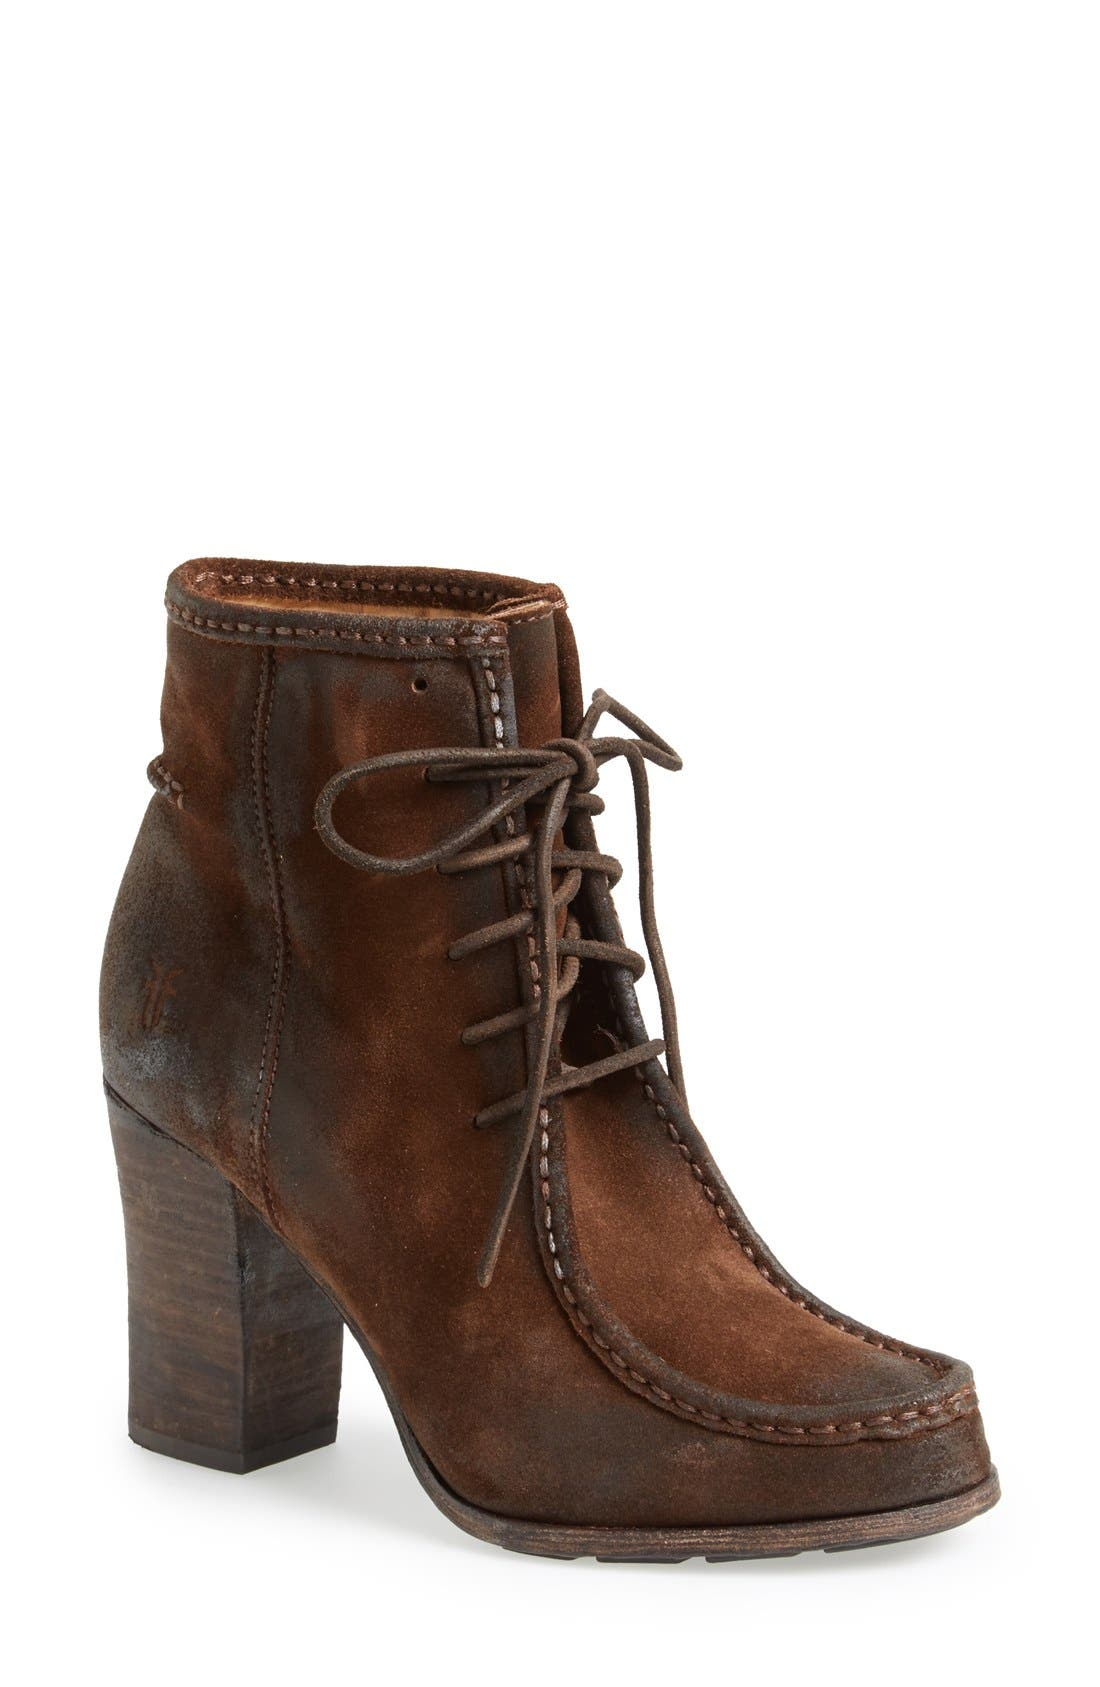 Alternate Image 1 Selected - Frye 'Parker' Suede Moc Toe Ankle Boot (Women)